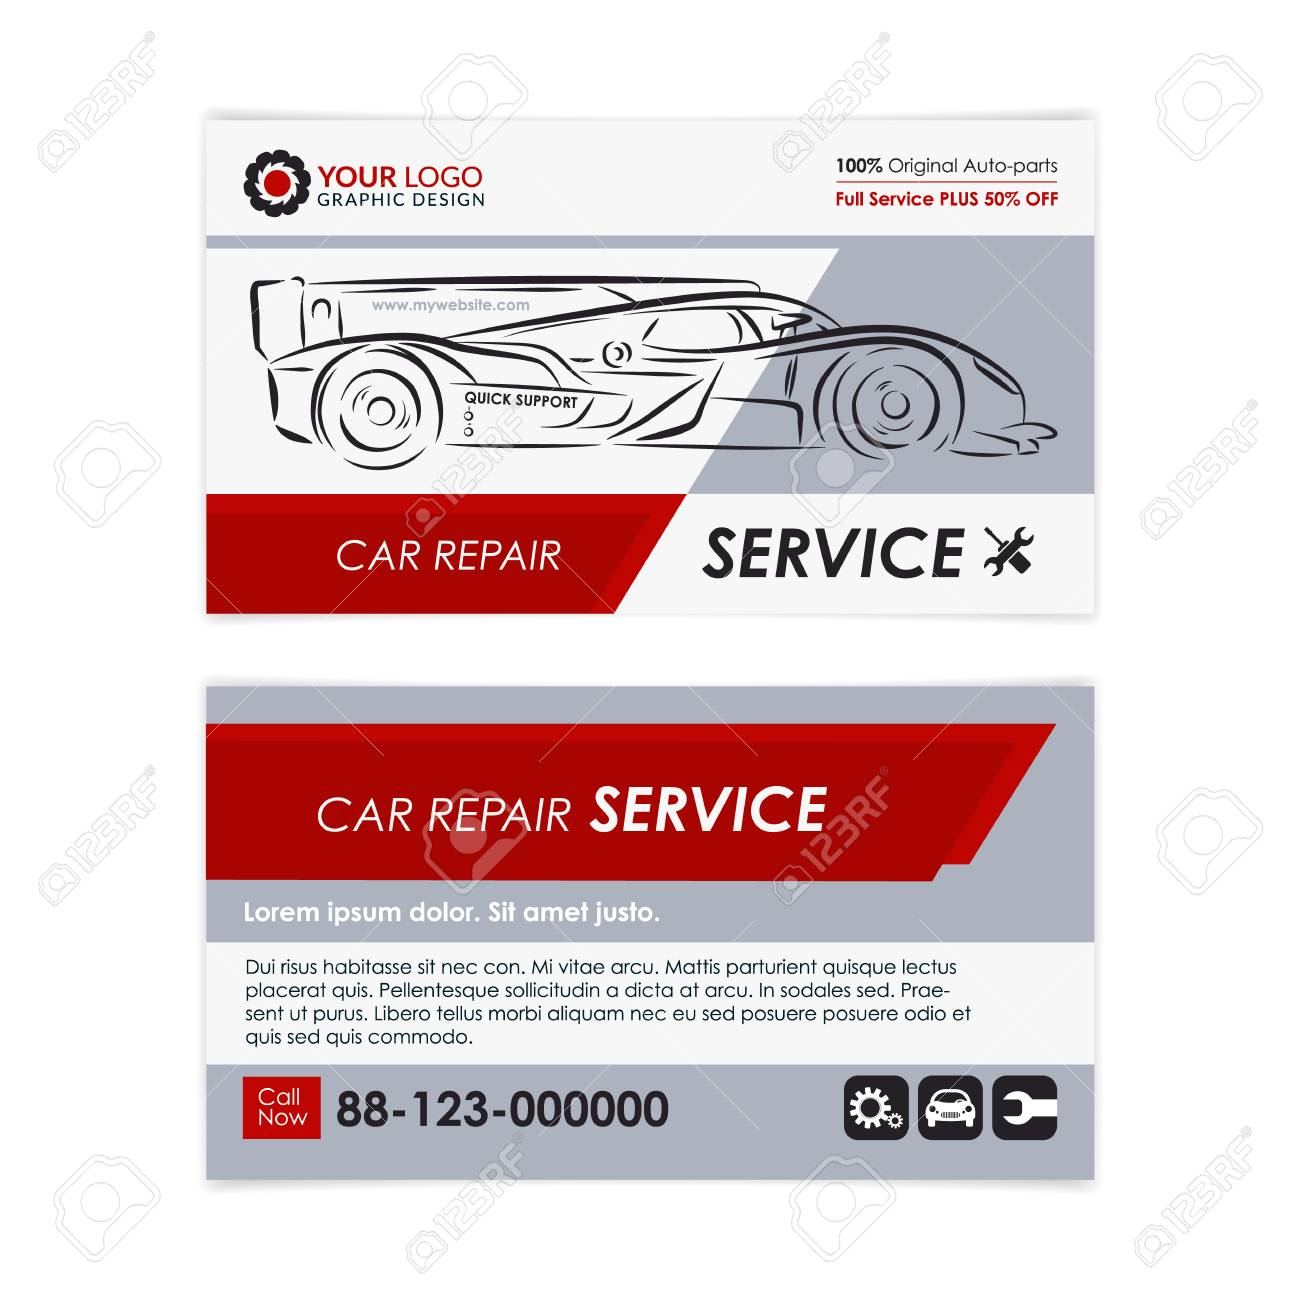 Bring Your Own Parts Auto Repair >> Bring Your Own Parts Auto Repair Auto Car Reviews 2019 2020